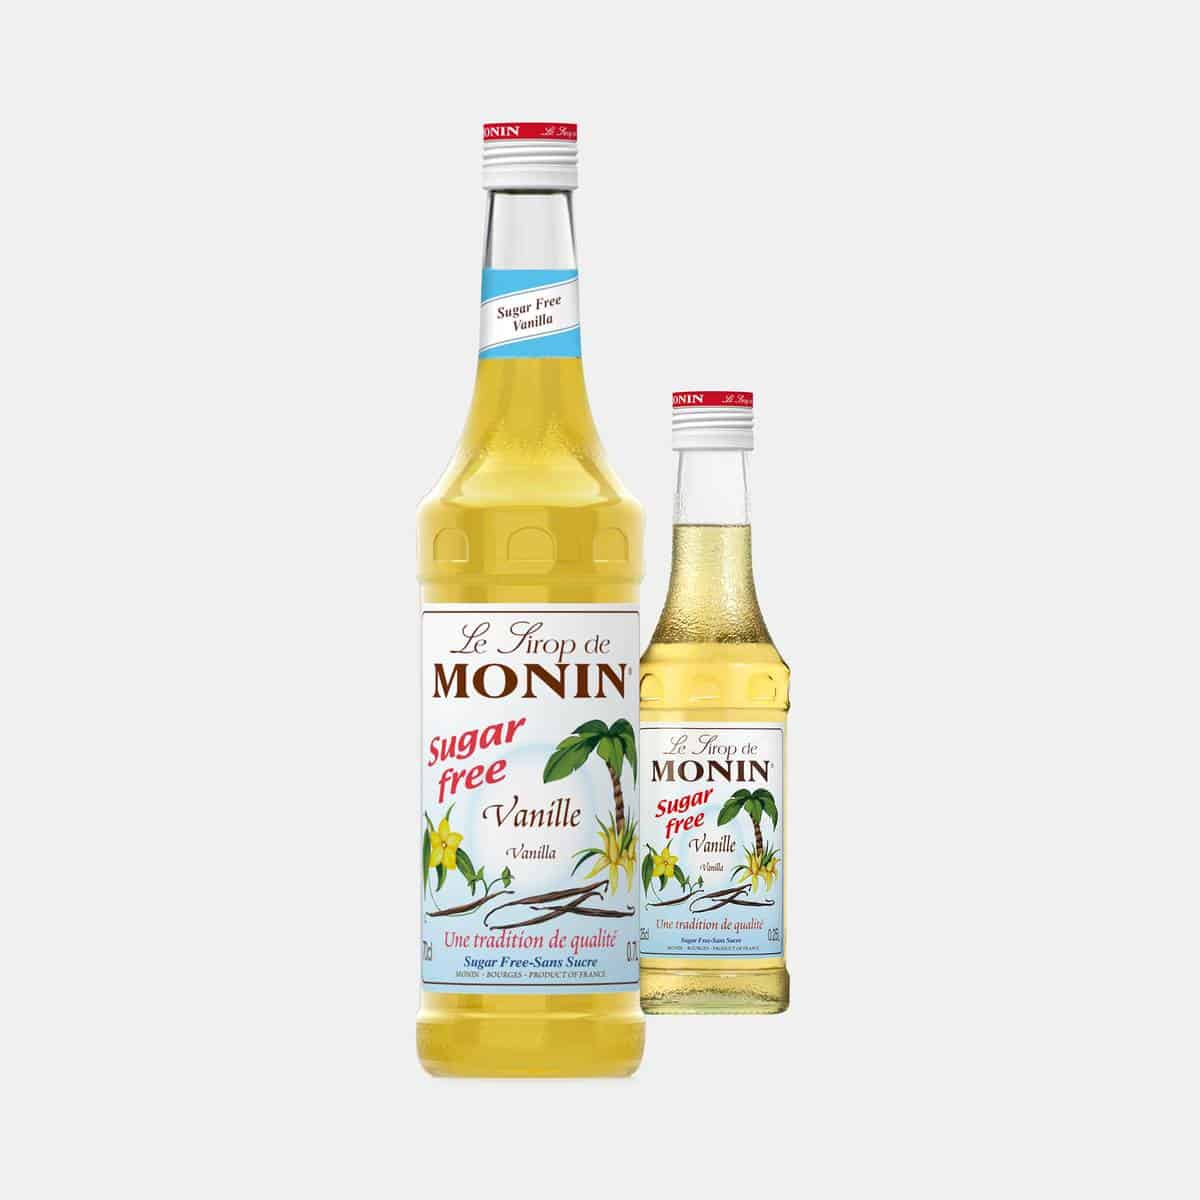 MONIN Sugar Free Vanilla Syrup Glass Bottles